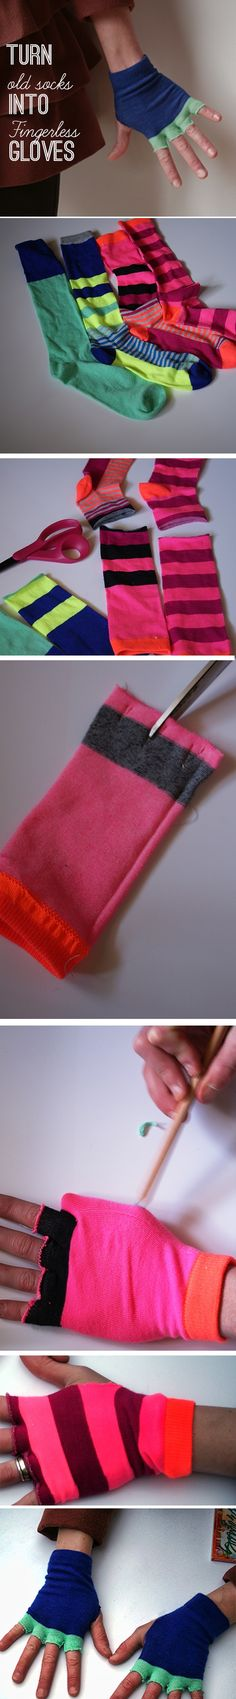 DIY gloves from old socks. The girl is going to love these! Princess gloves!